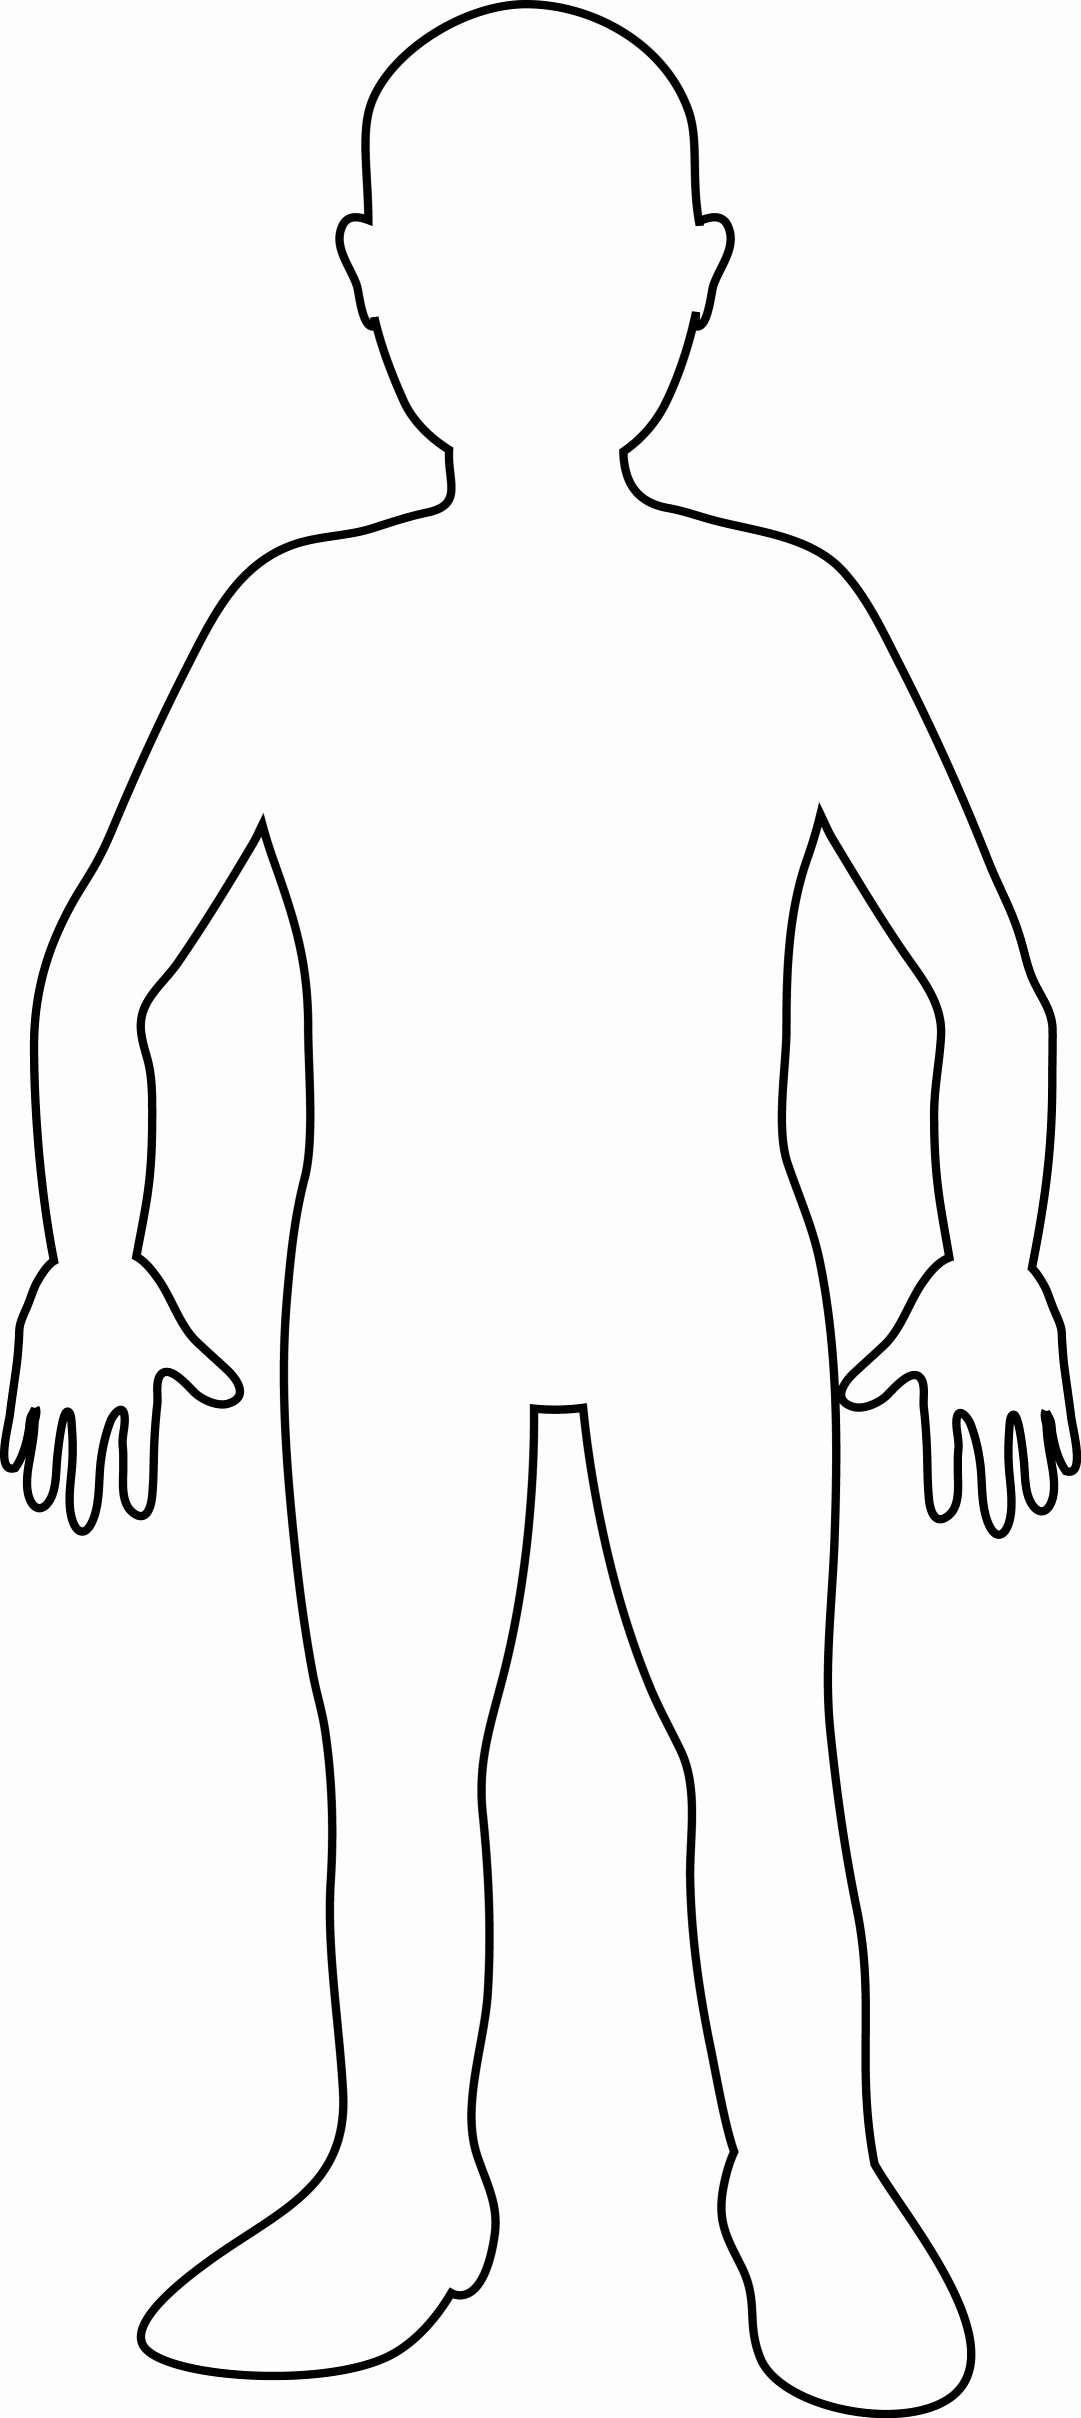 Blank Male Body Template Elegant Templates Clipart Body Pencil and In Color Templates